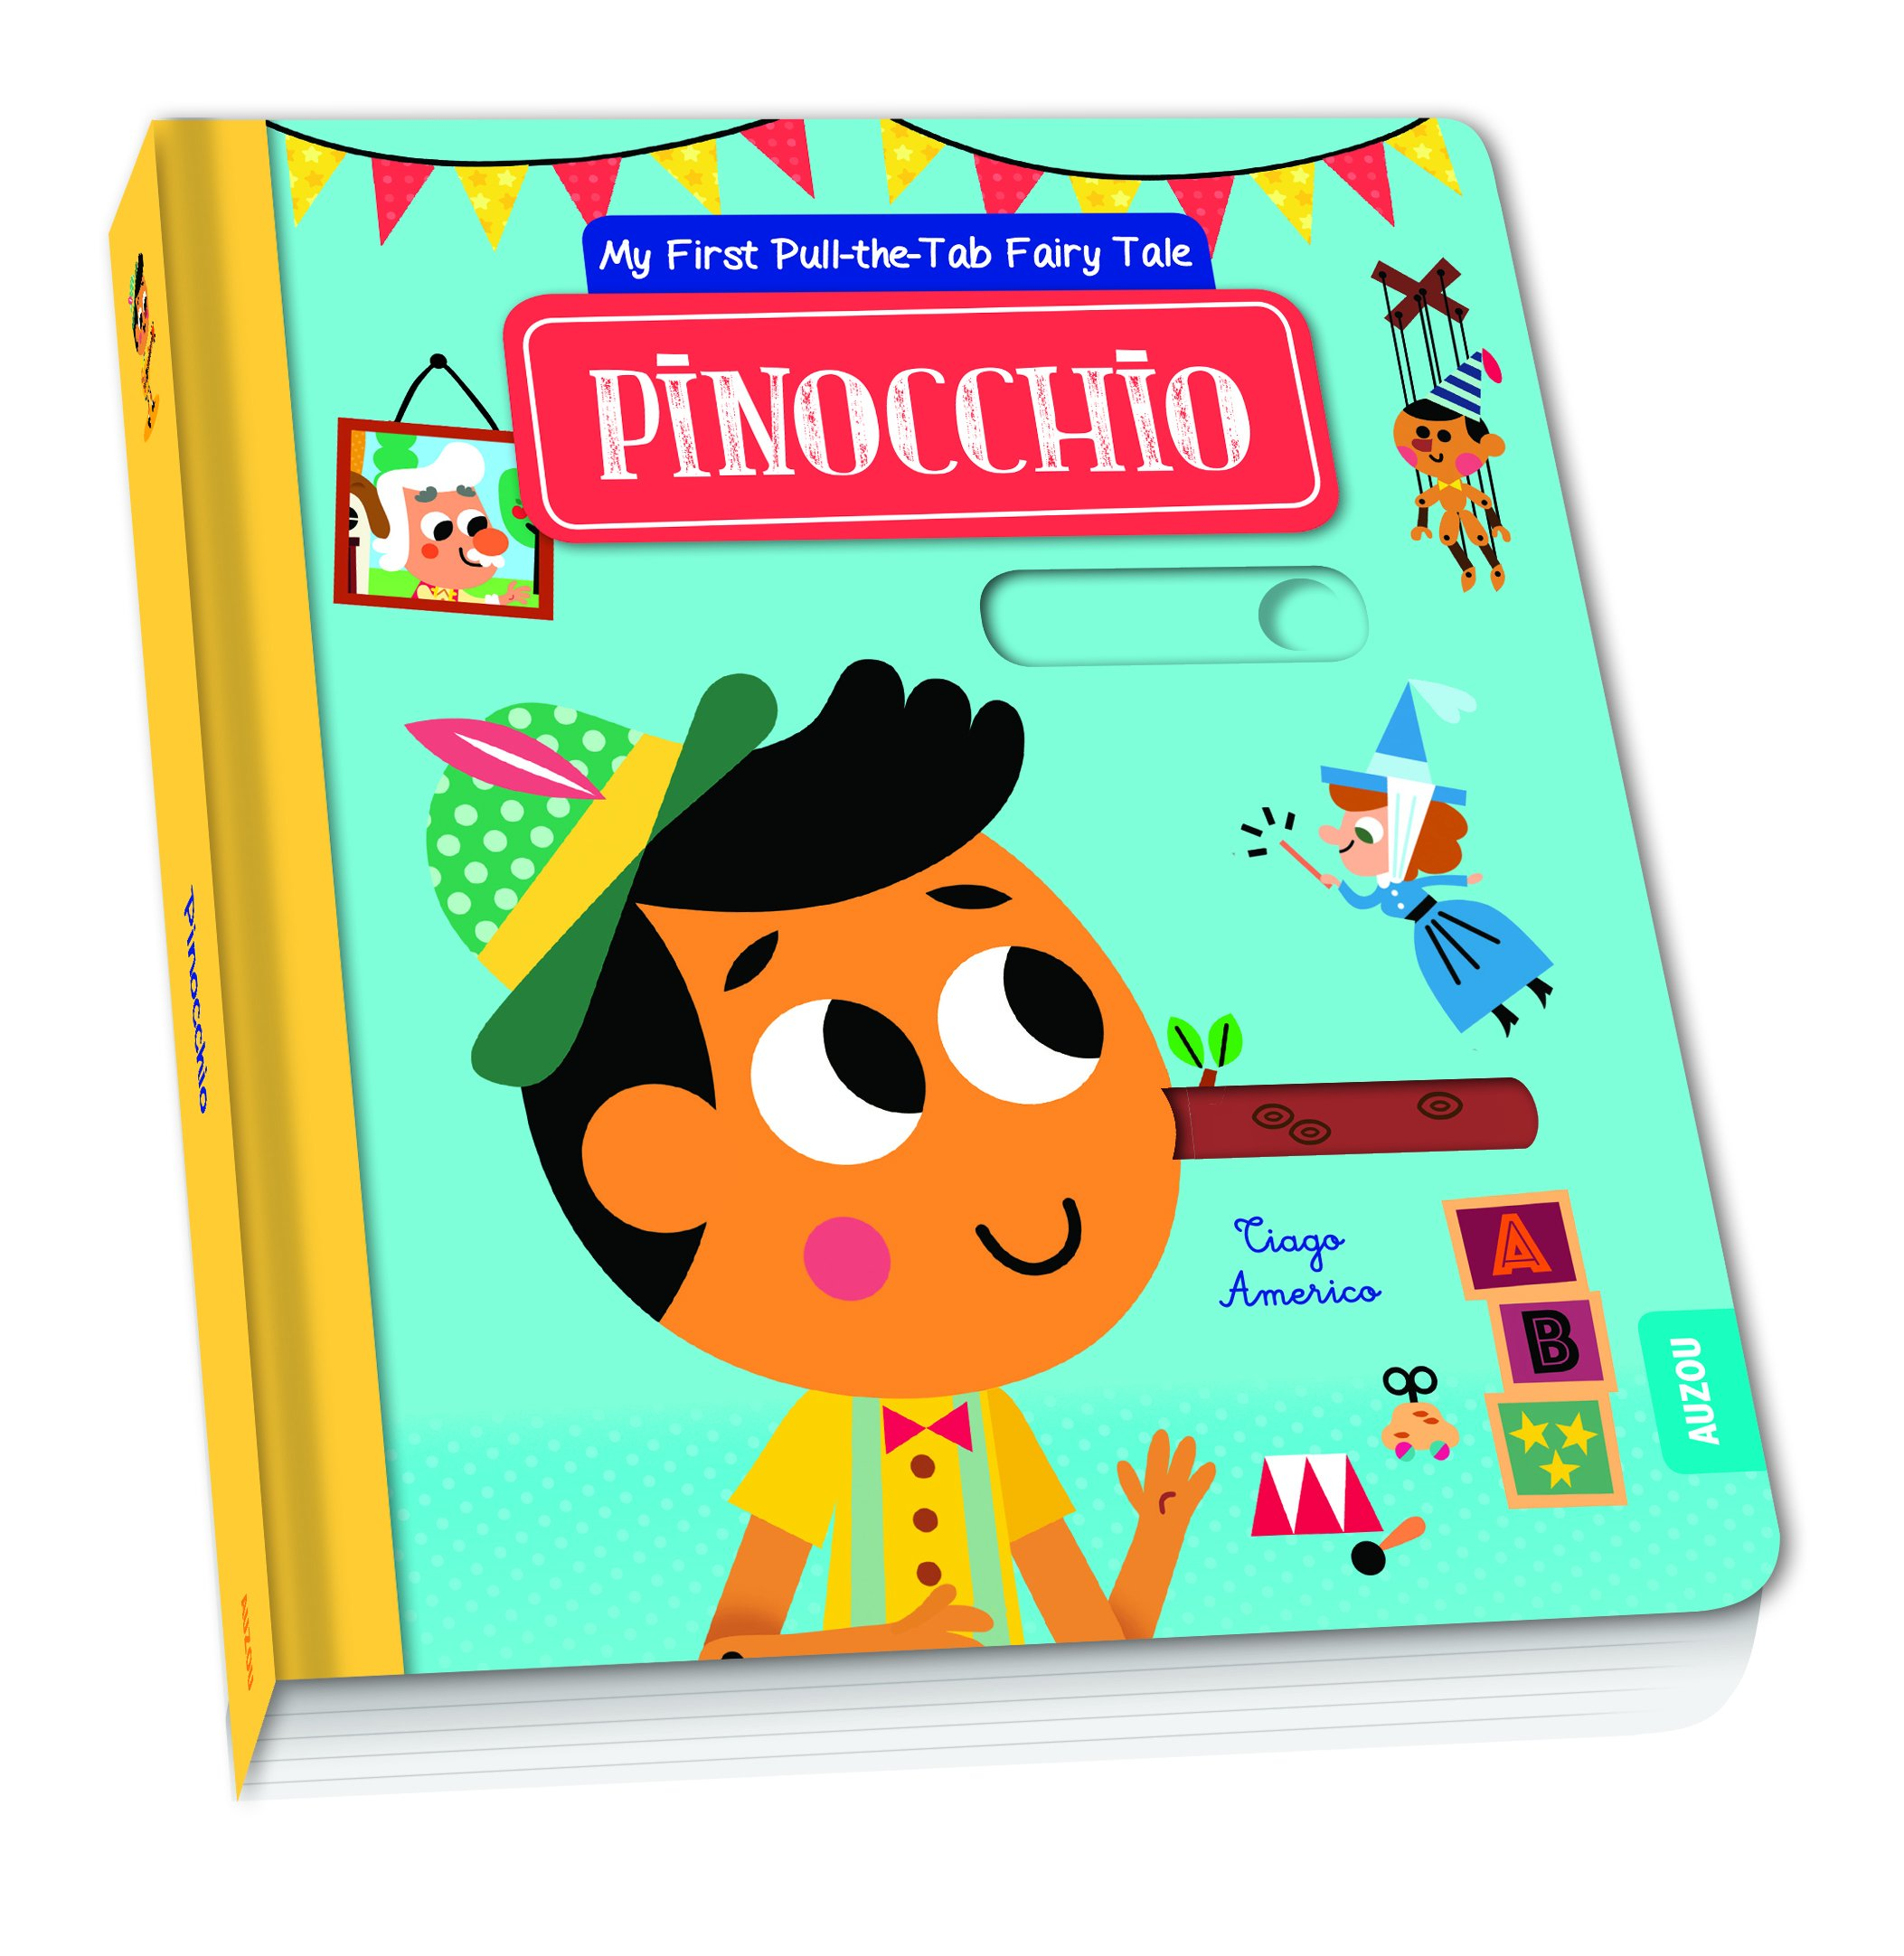 Pinocchio (My First Pull-the-Tab Fairy Tale)